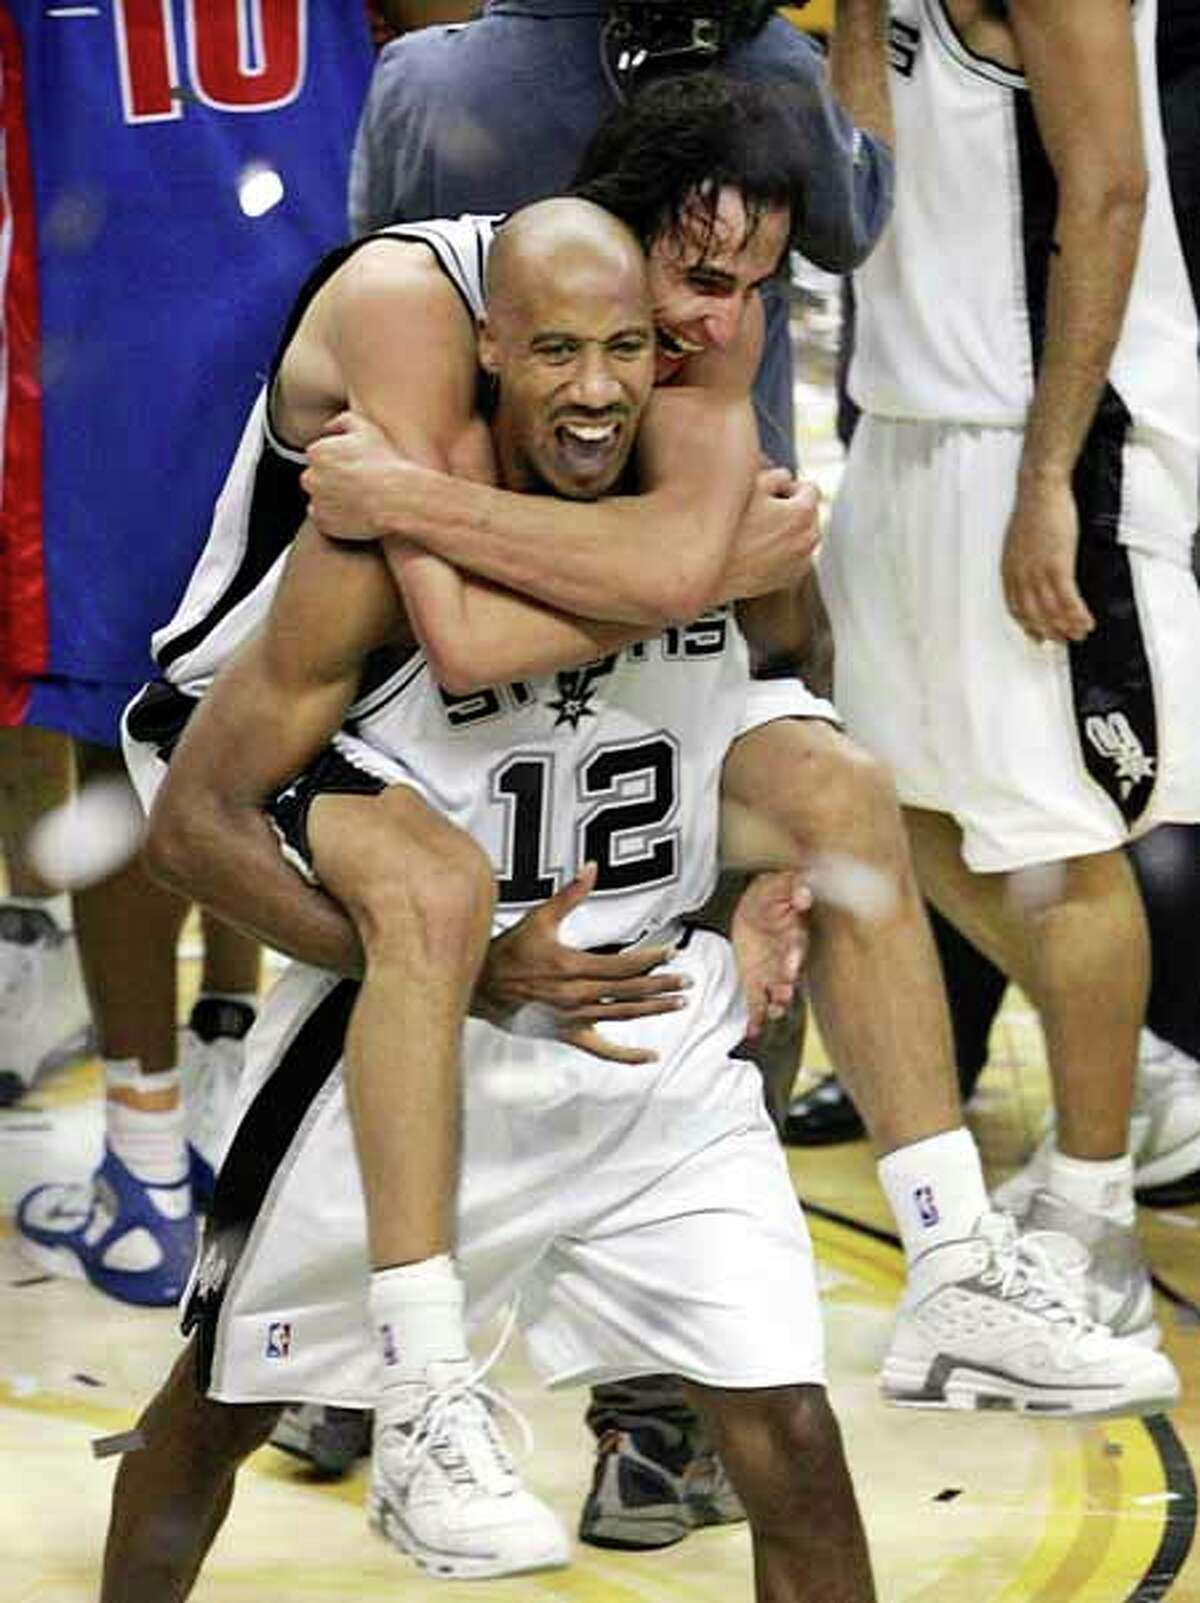 For all of the San Antonio fans who miss watching their favorite basketball team, the Spurs are hosting a watch party at the AT&T Center next week to relive the team's 2005 NBA Championship win. In the photo, the team is seen celebrating.